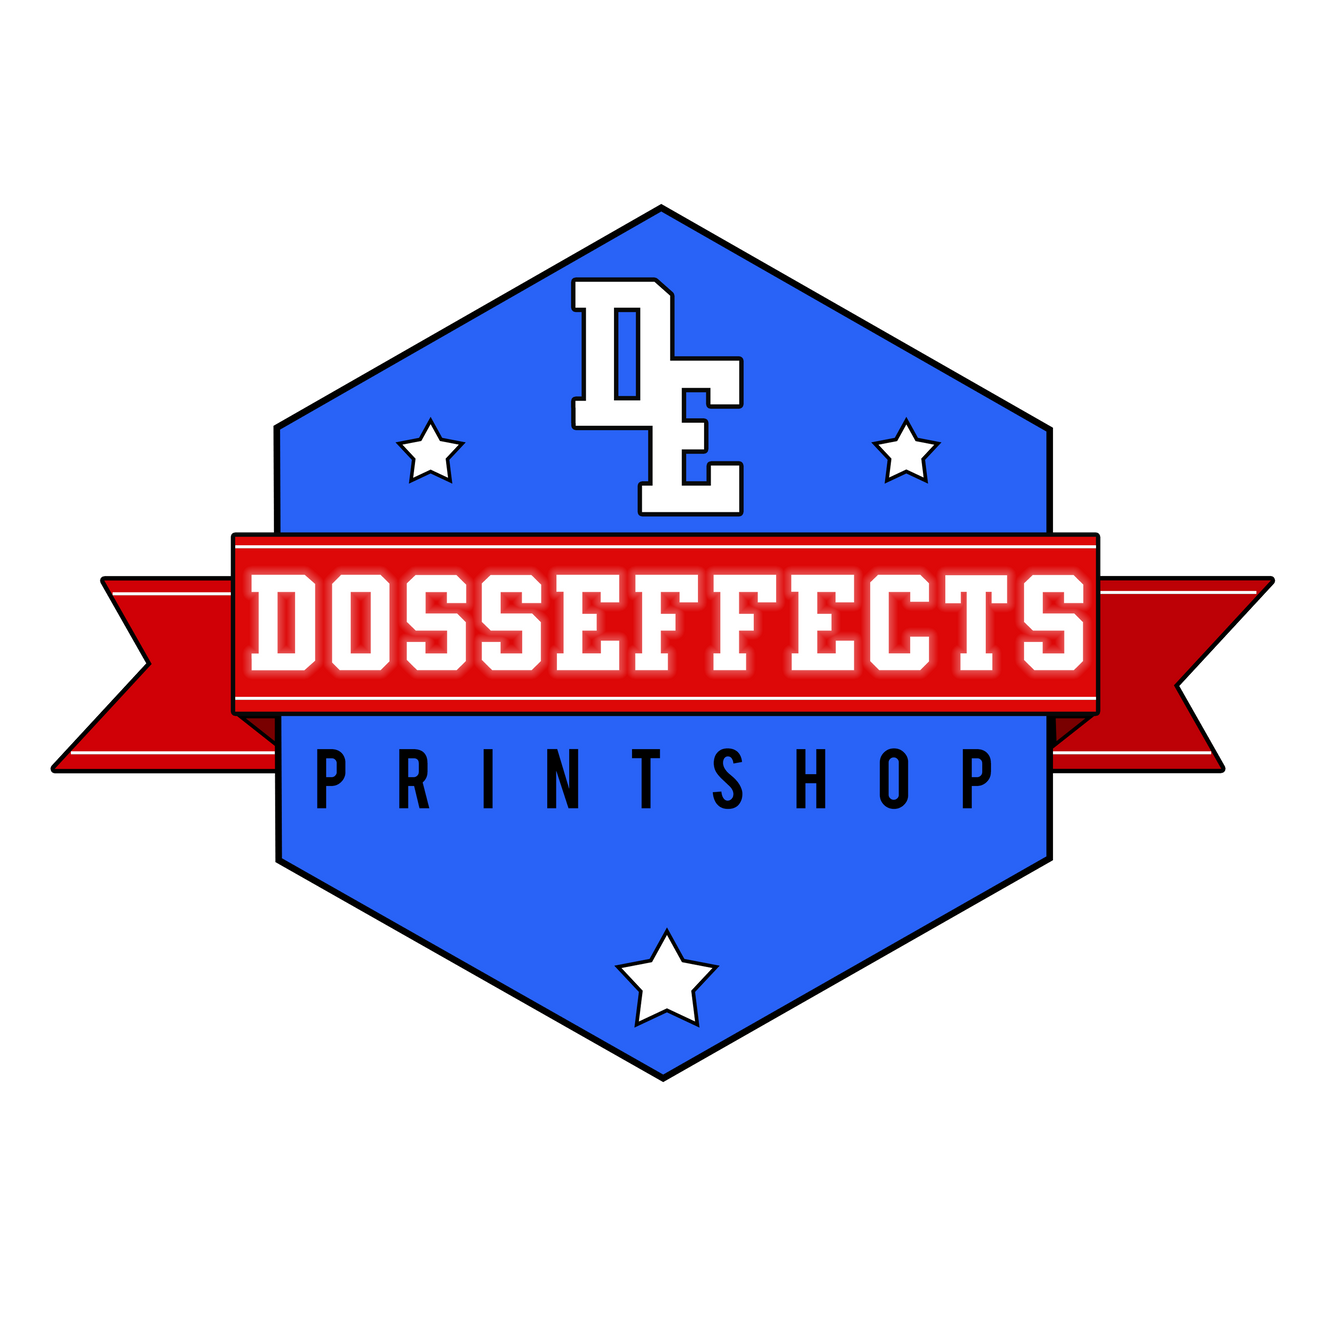 Dosseffects Print Shop,screen printing,embroidery,signs,banners